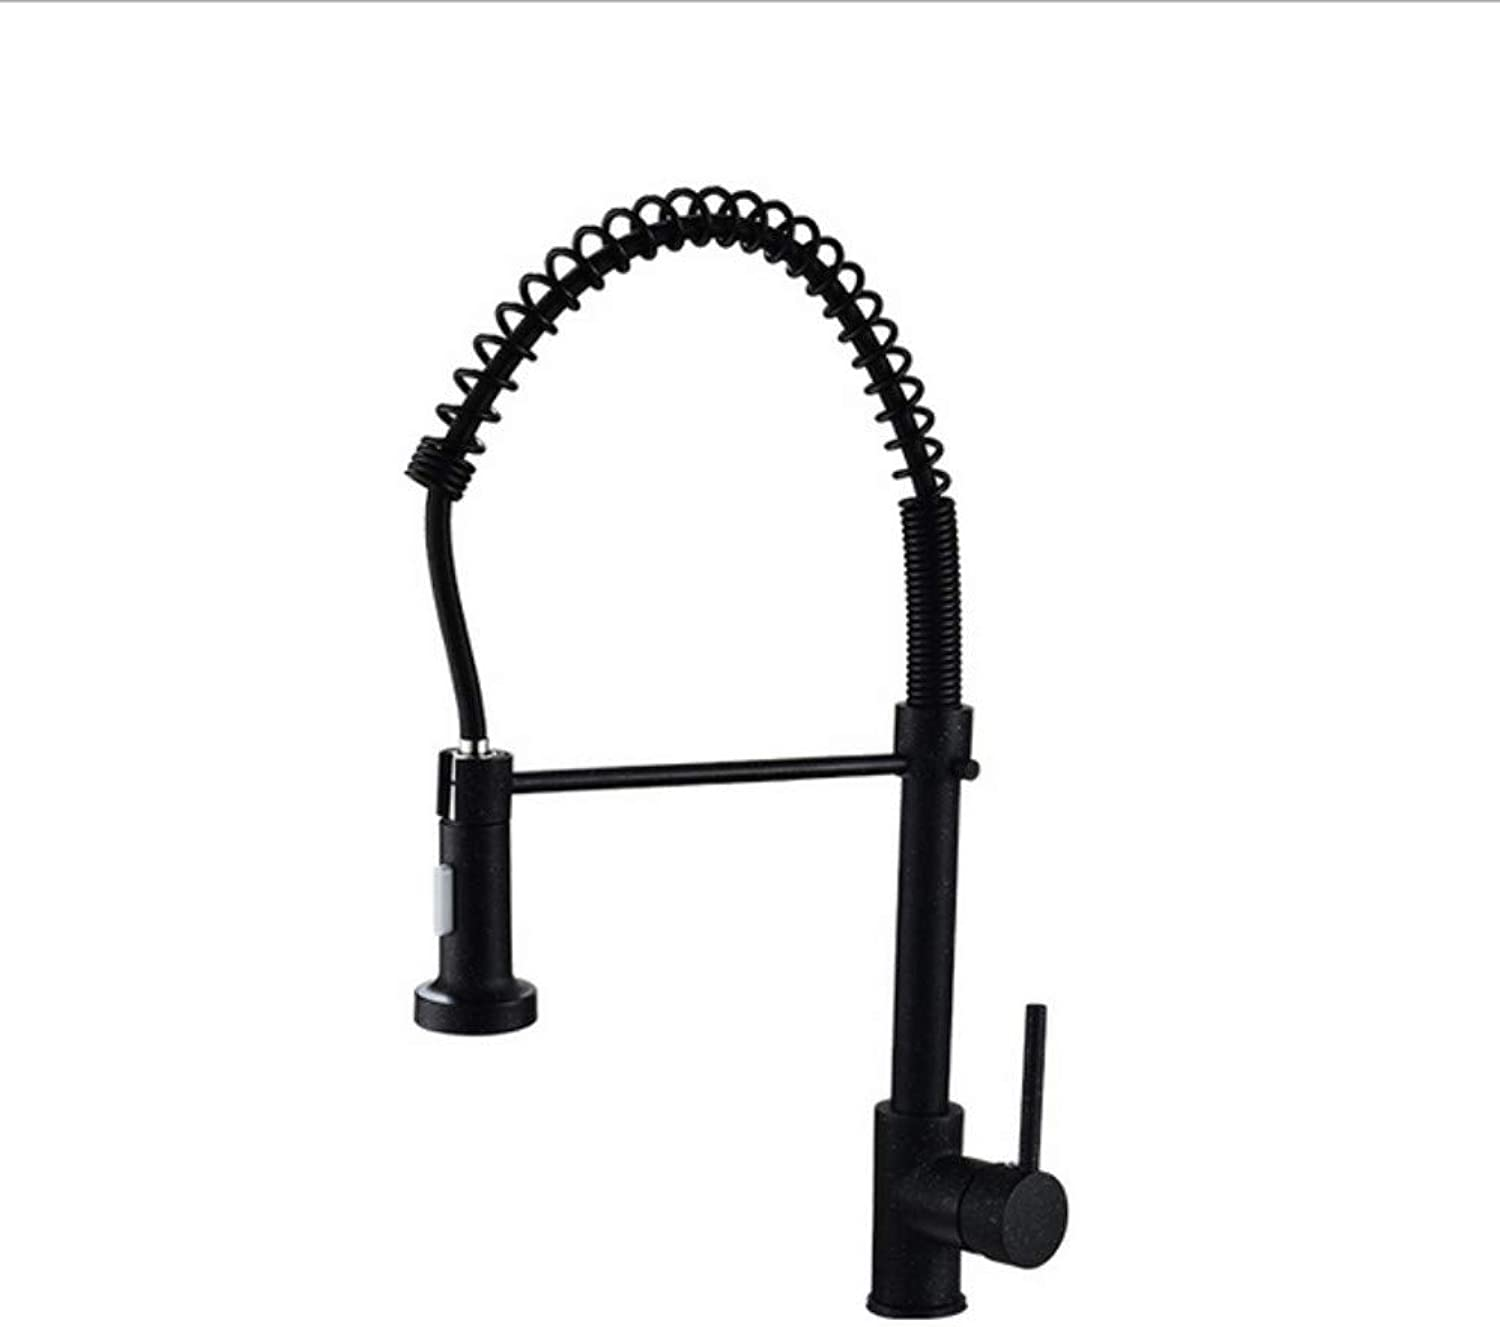 Xiujie Faucet Black Ancient Single Spring Faucet Copper Single Hole Pull Spring Faucet Hot and Cold redatable Kitchen Faucet